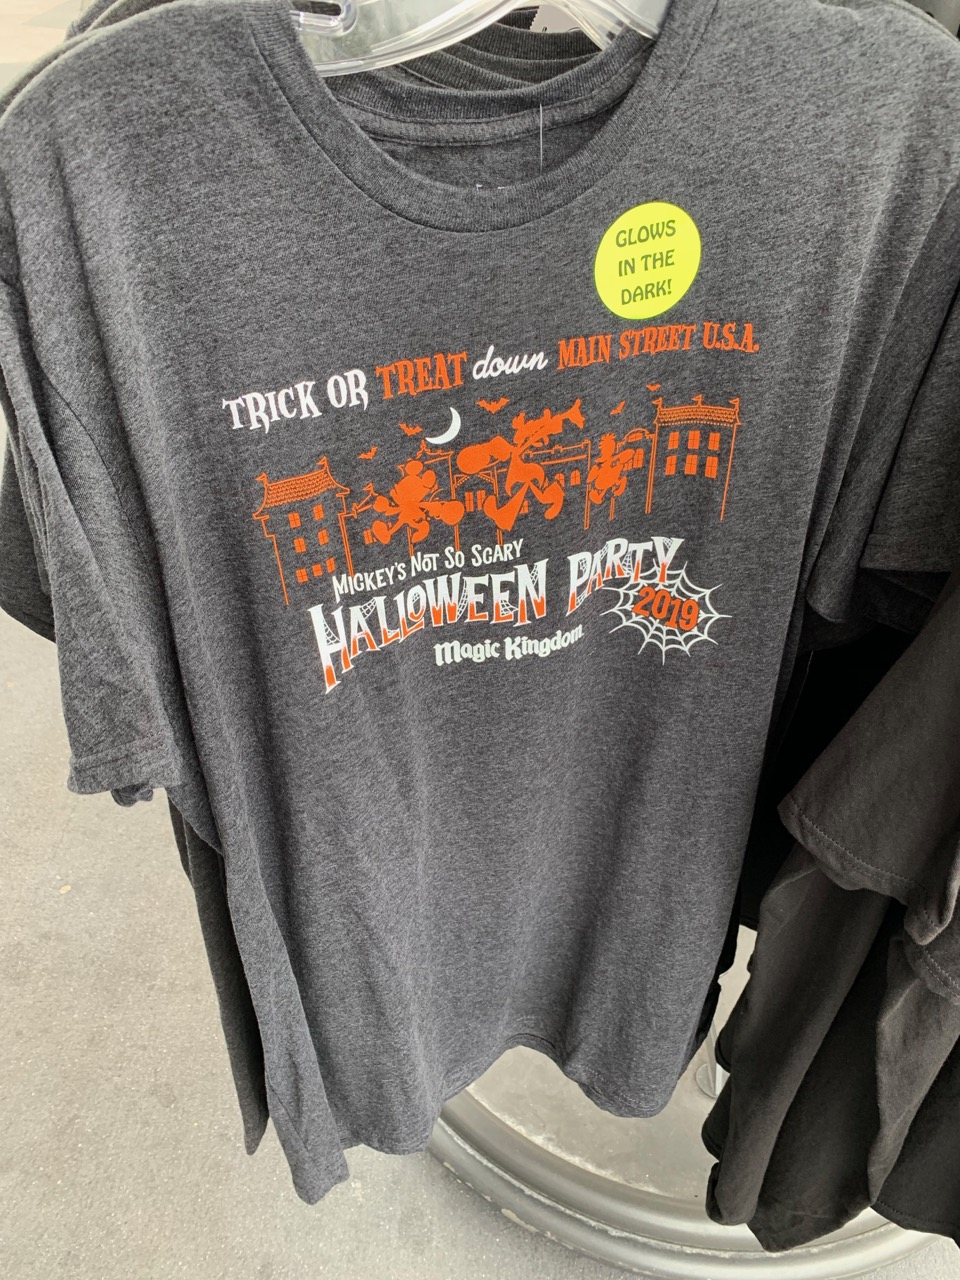 mickeys not so scary halloween party 2019 merchandise 18.jpeg